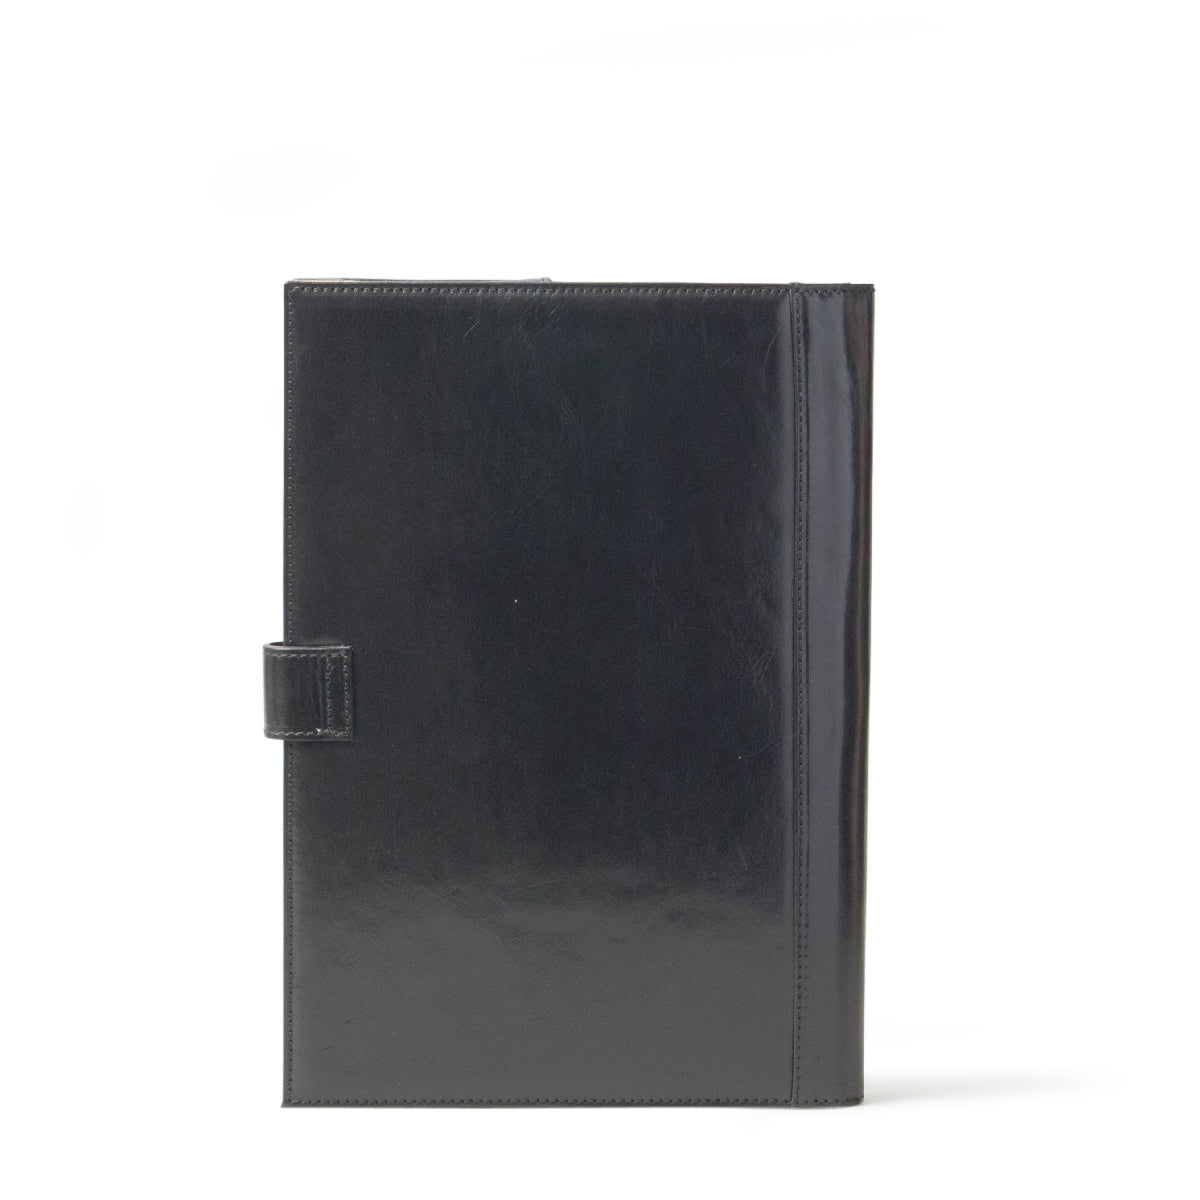 Image 4 of the 'Gallo' Black Veg-Tanned Leather Prestige Business Folder